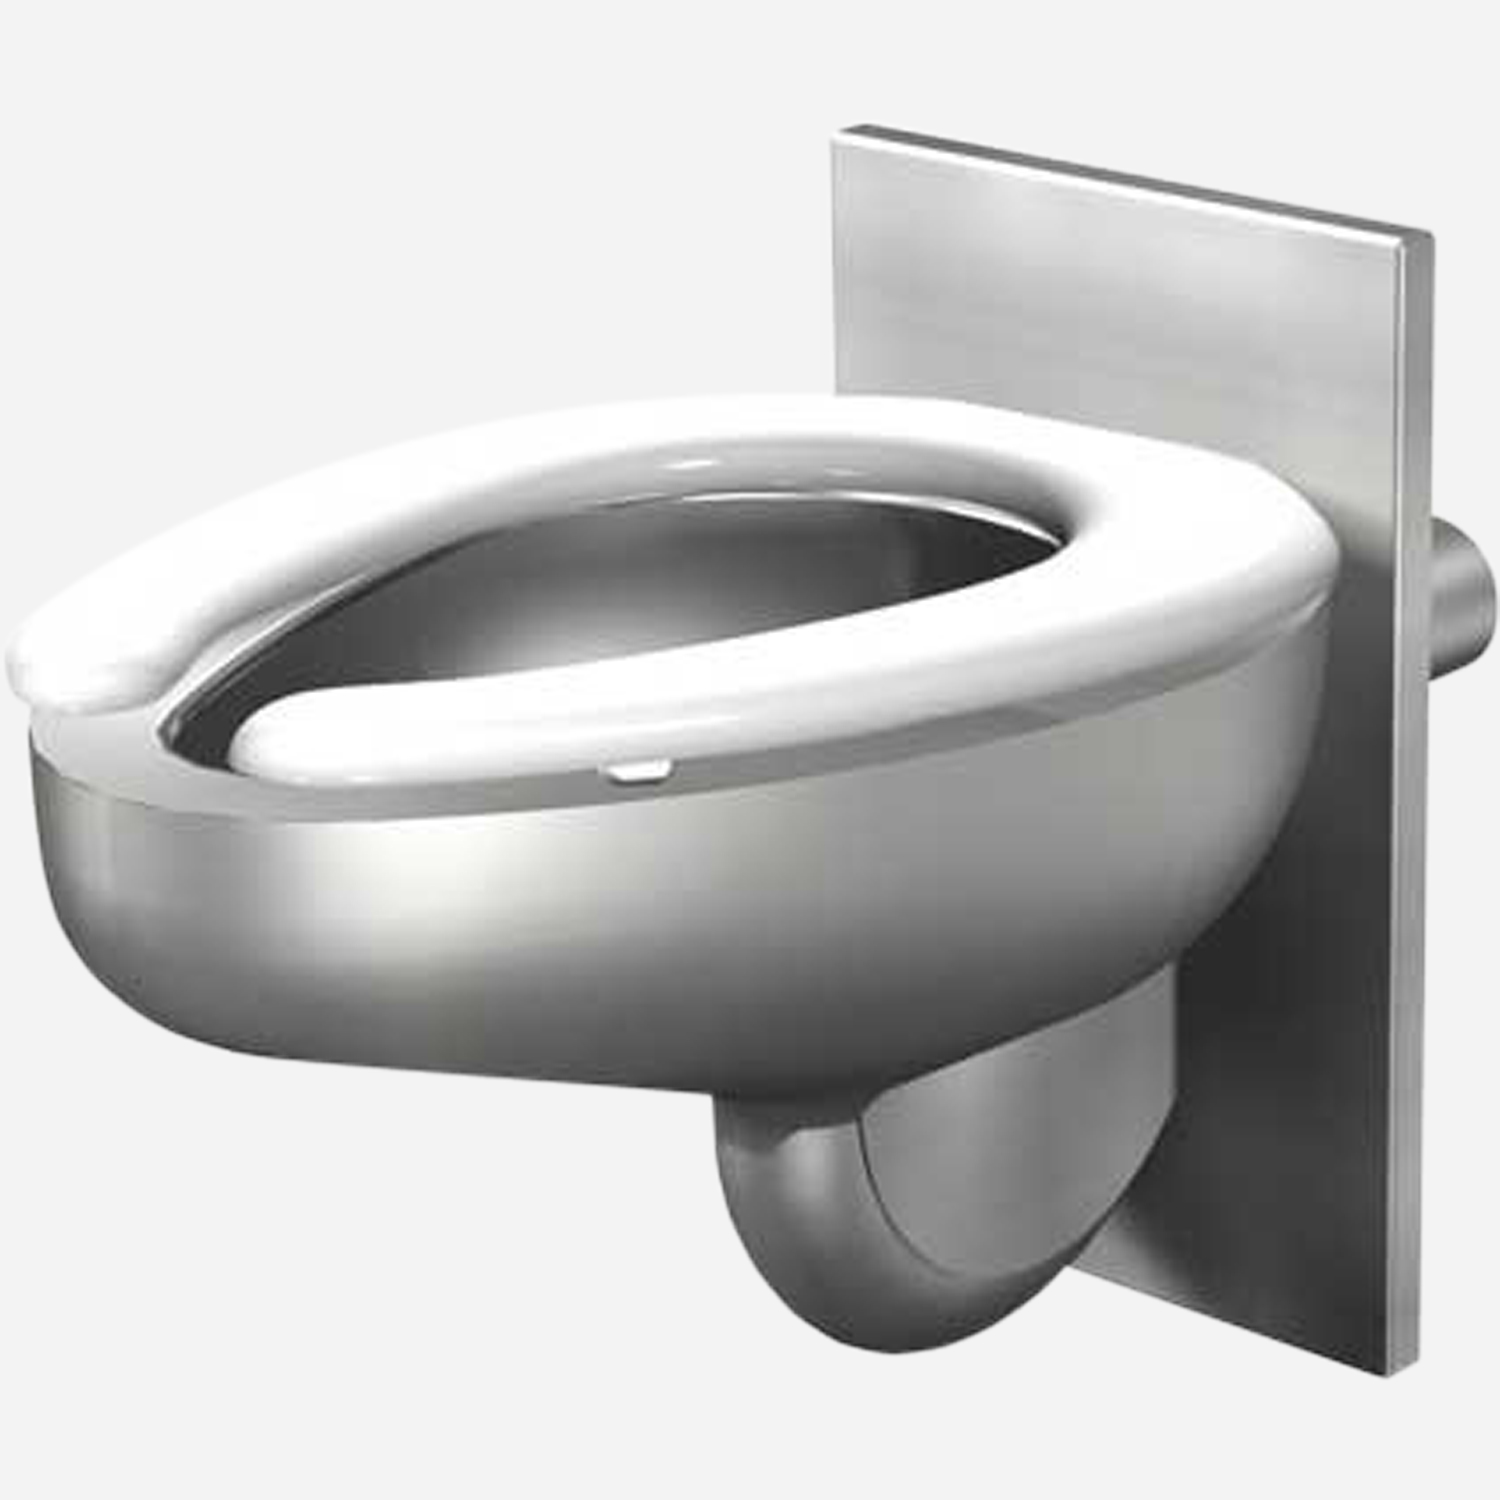 Stainless Steel Toilets Toilet Risers and Flush Valves